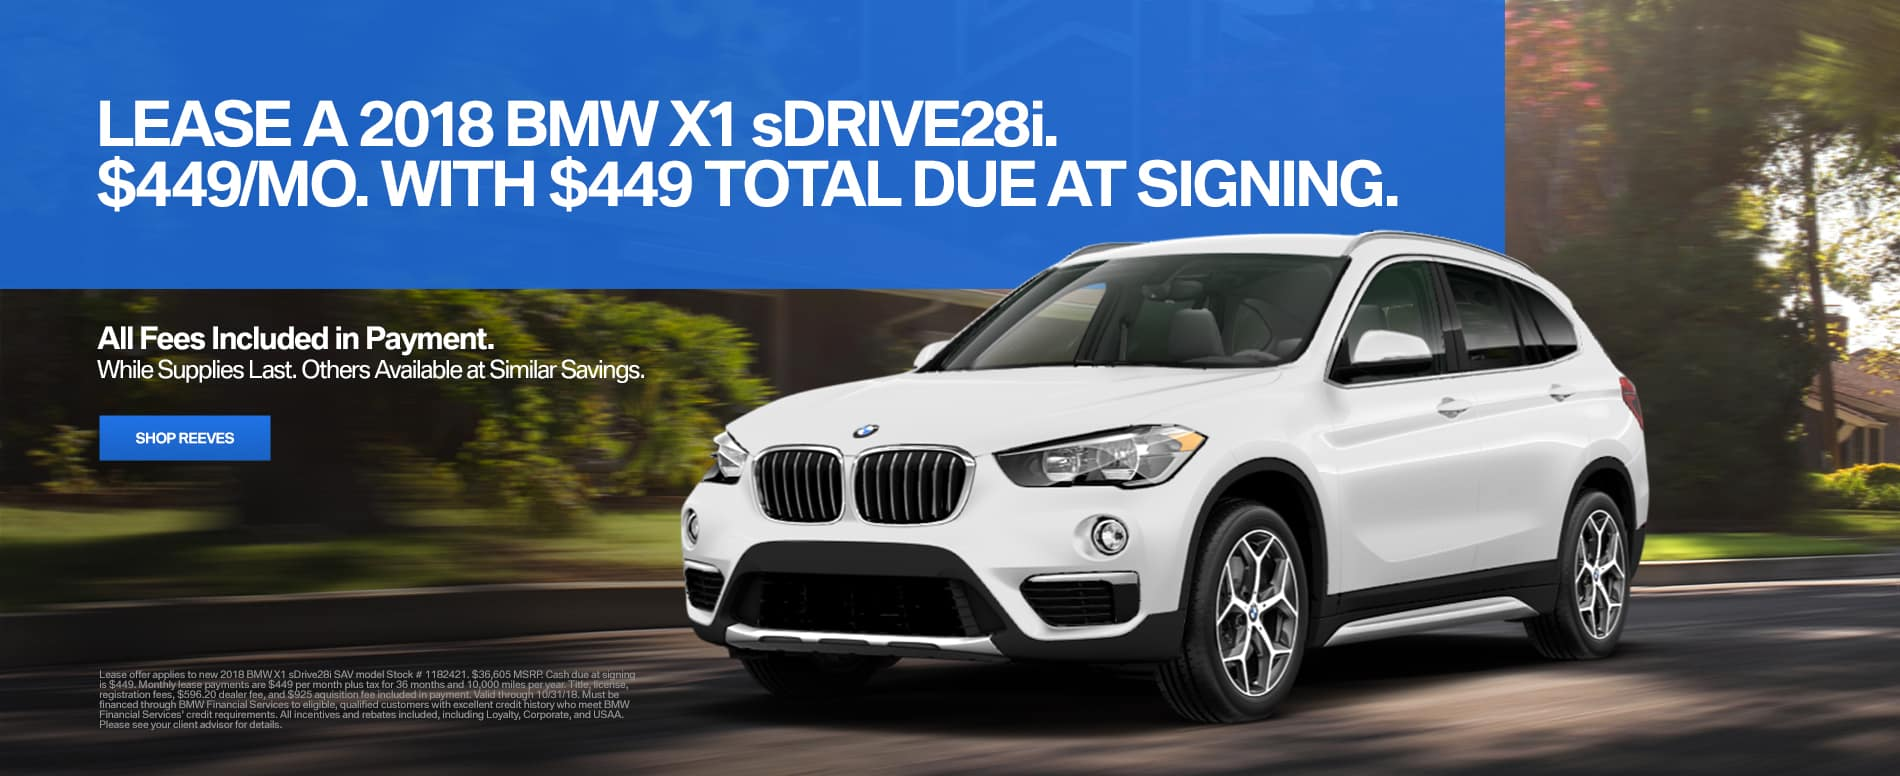 October BMW X1 Lease Special